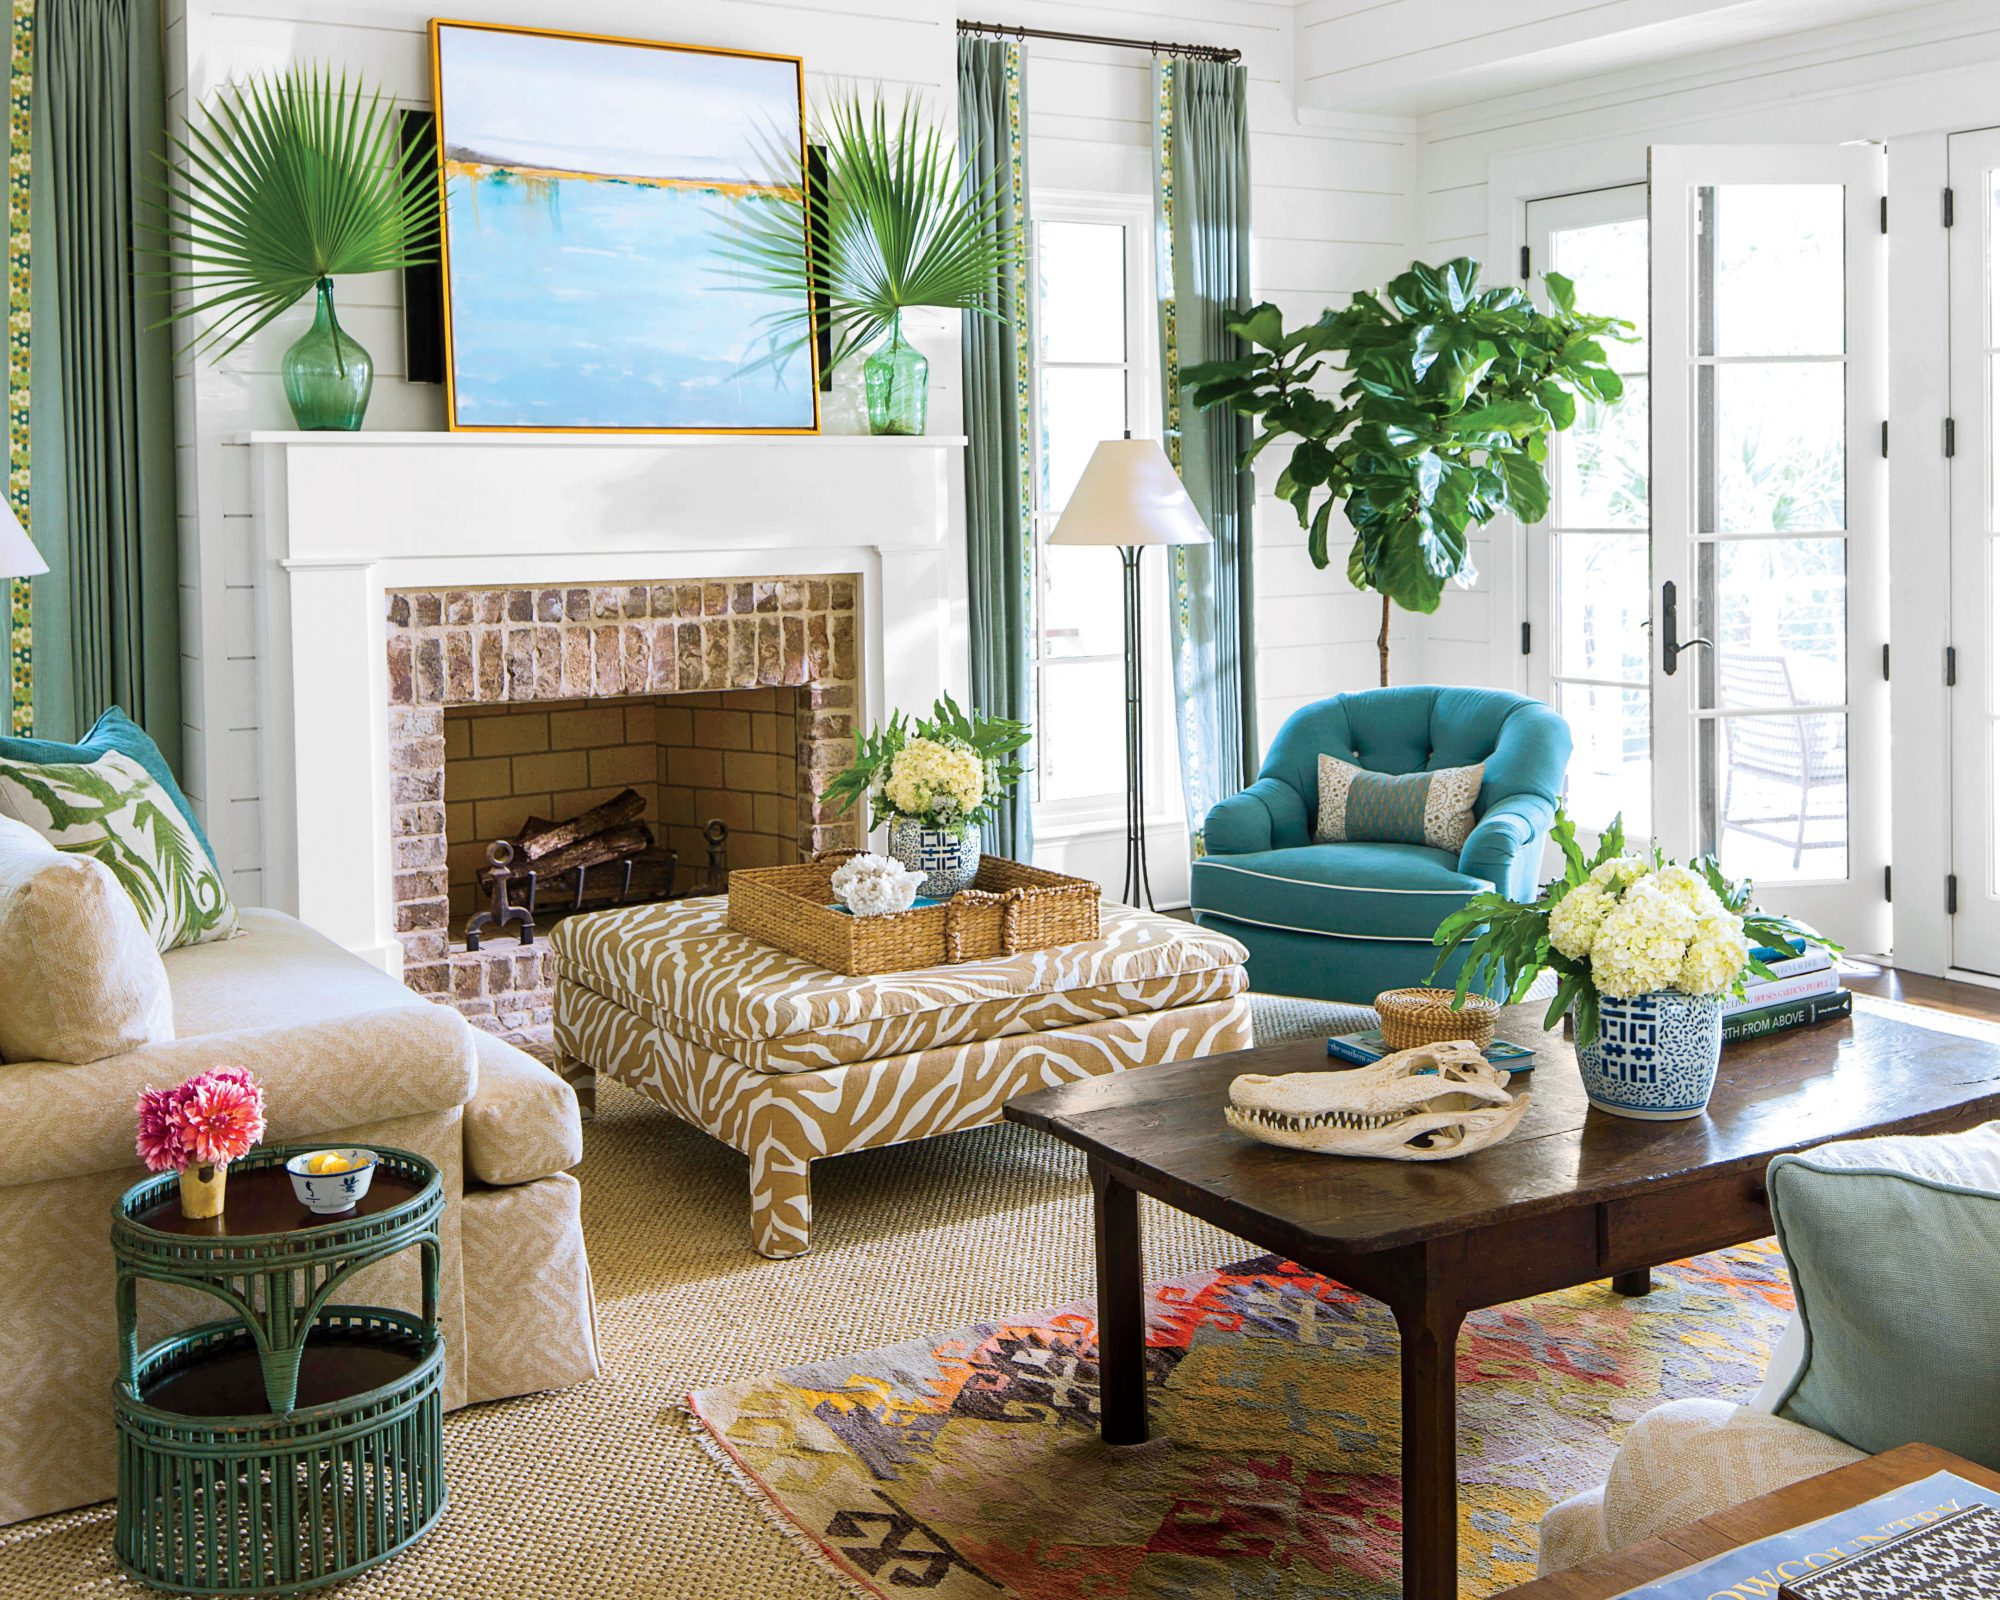 Decorating Ideas 106 living room decorating ideas - southern living